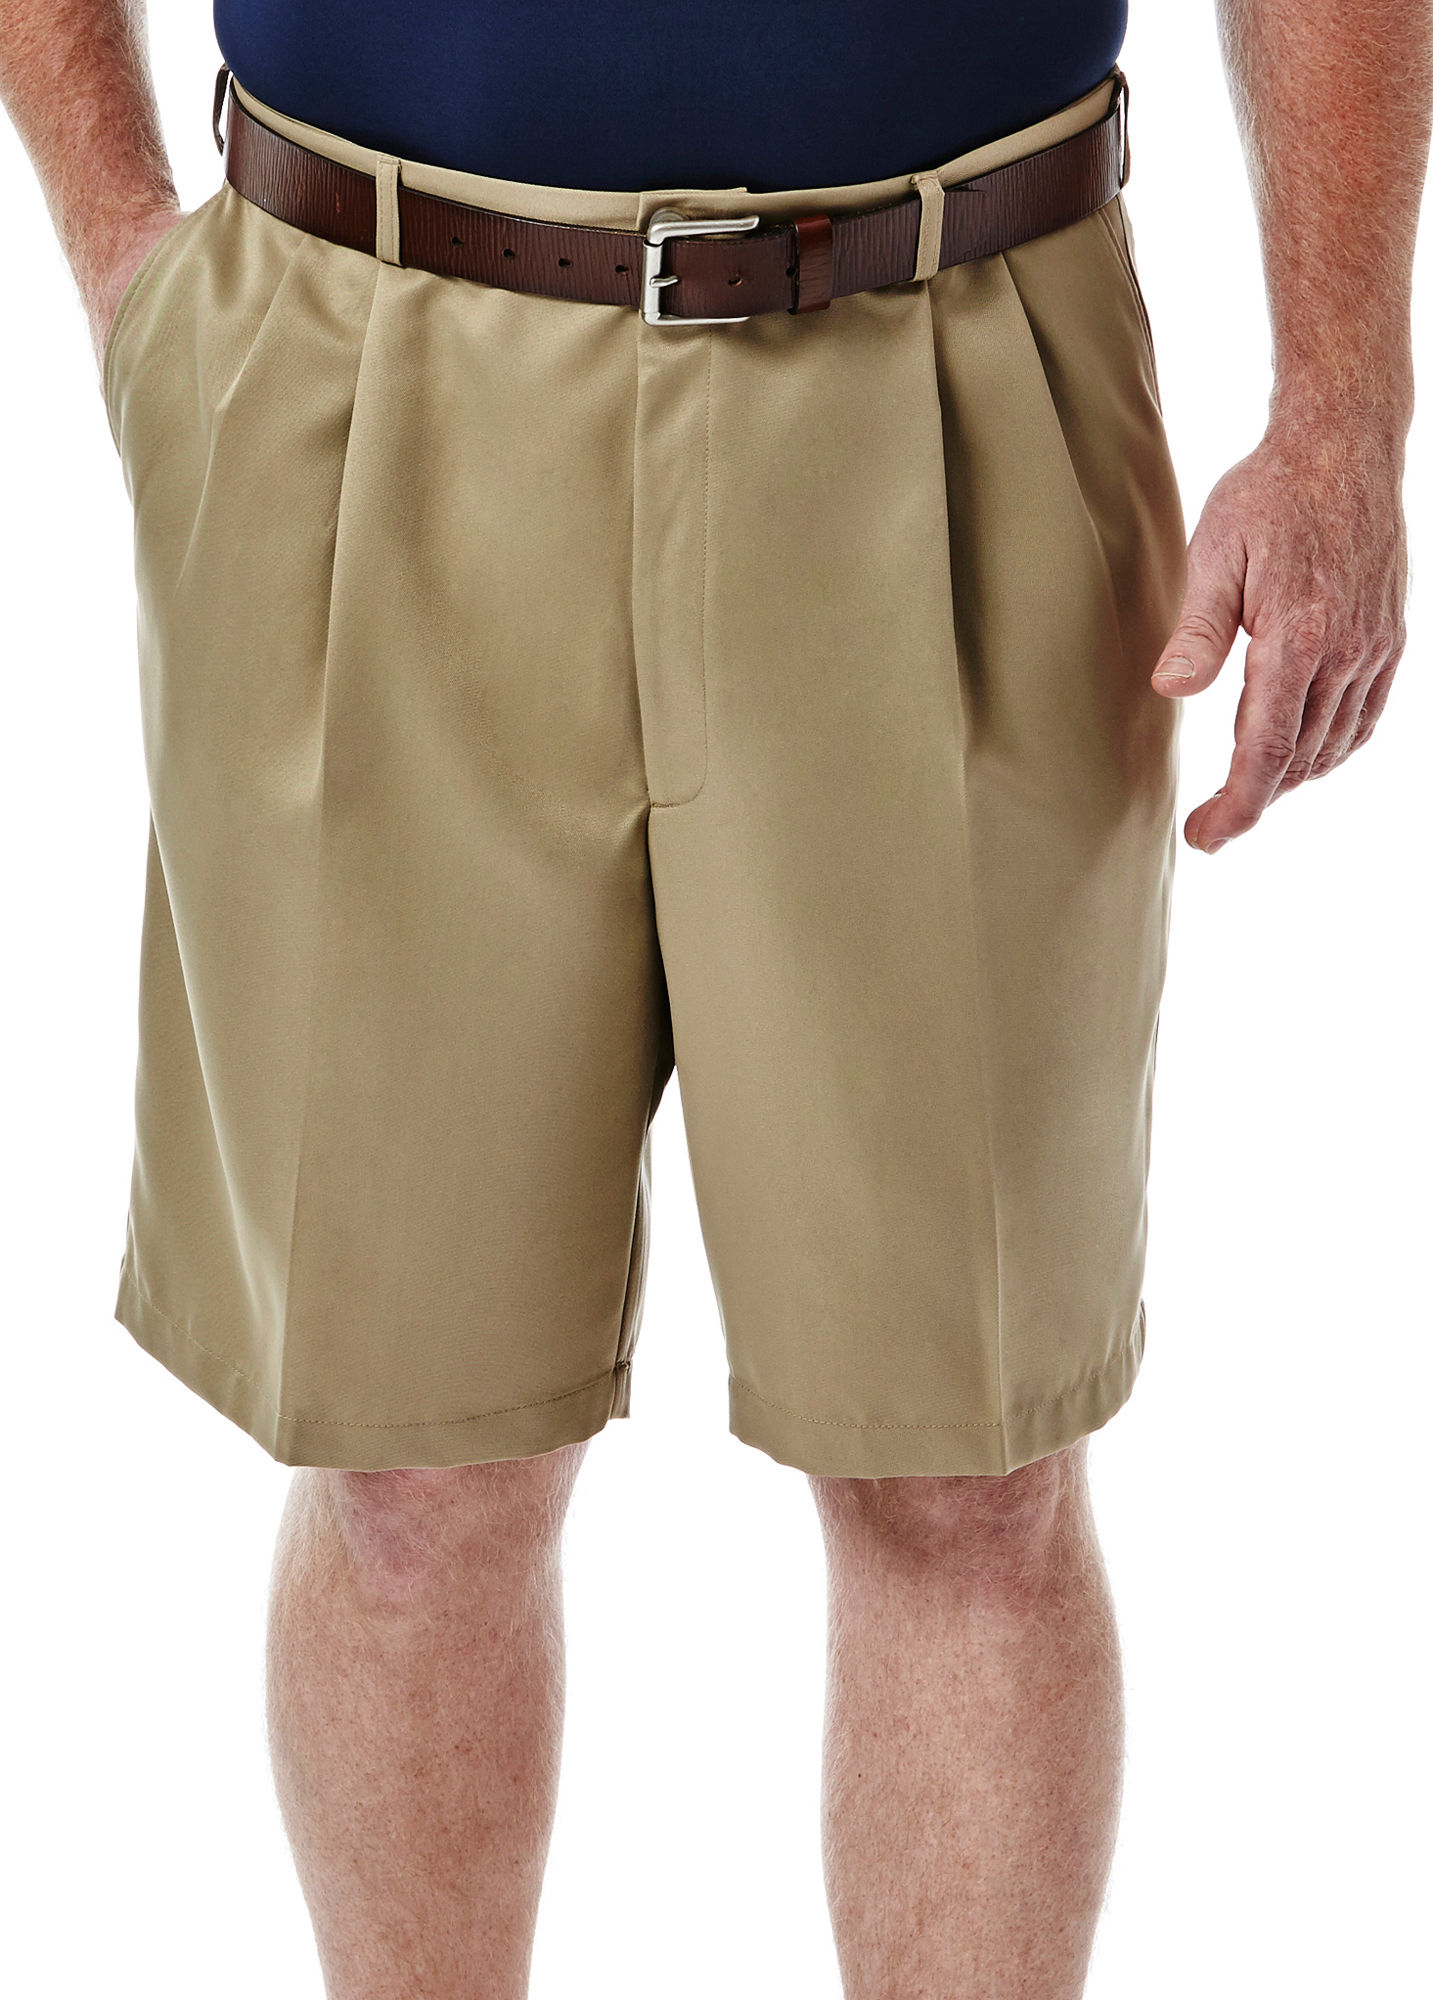 Find great deals on eBay for mens pleated shorts. Shop with confidence.